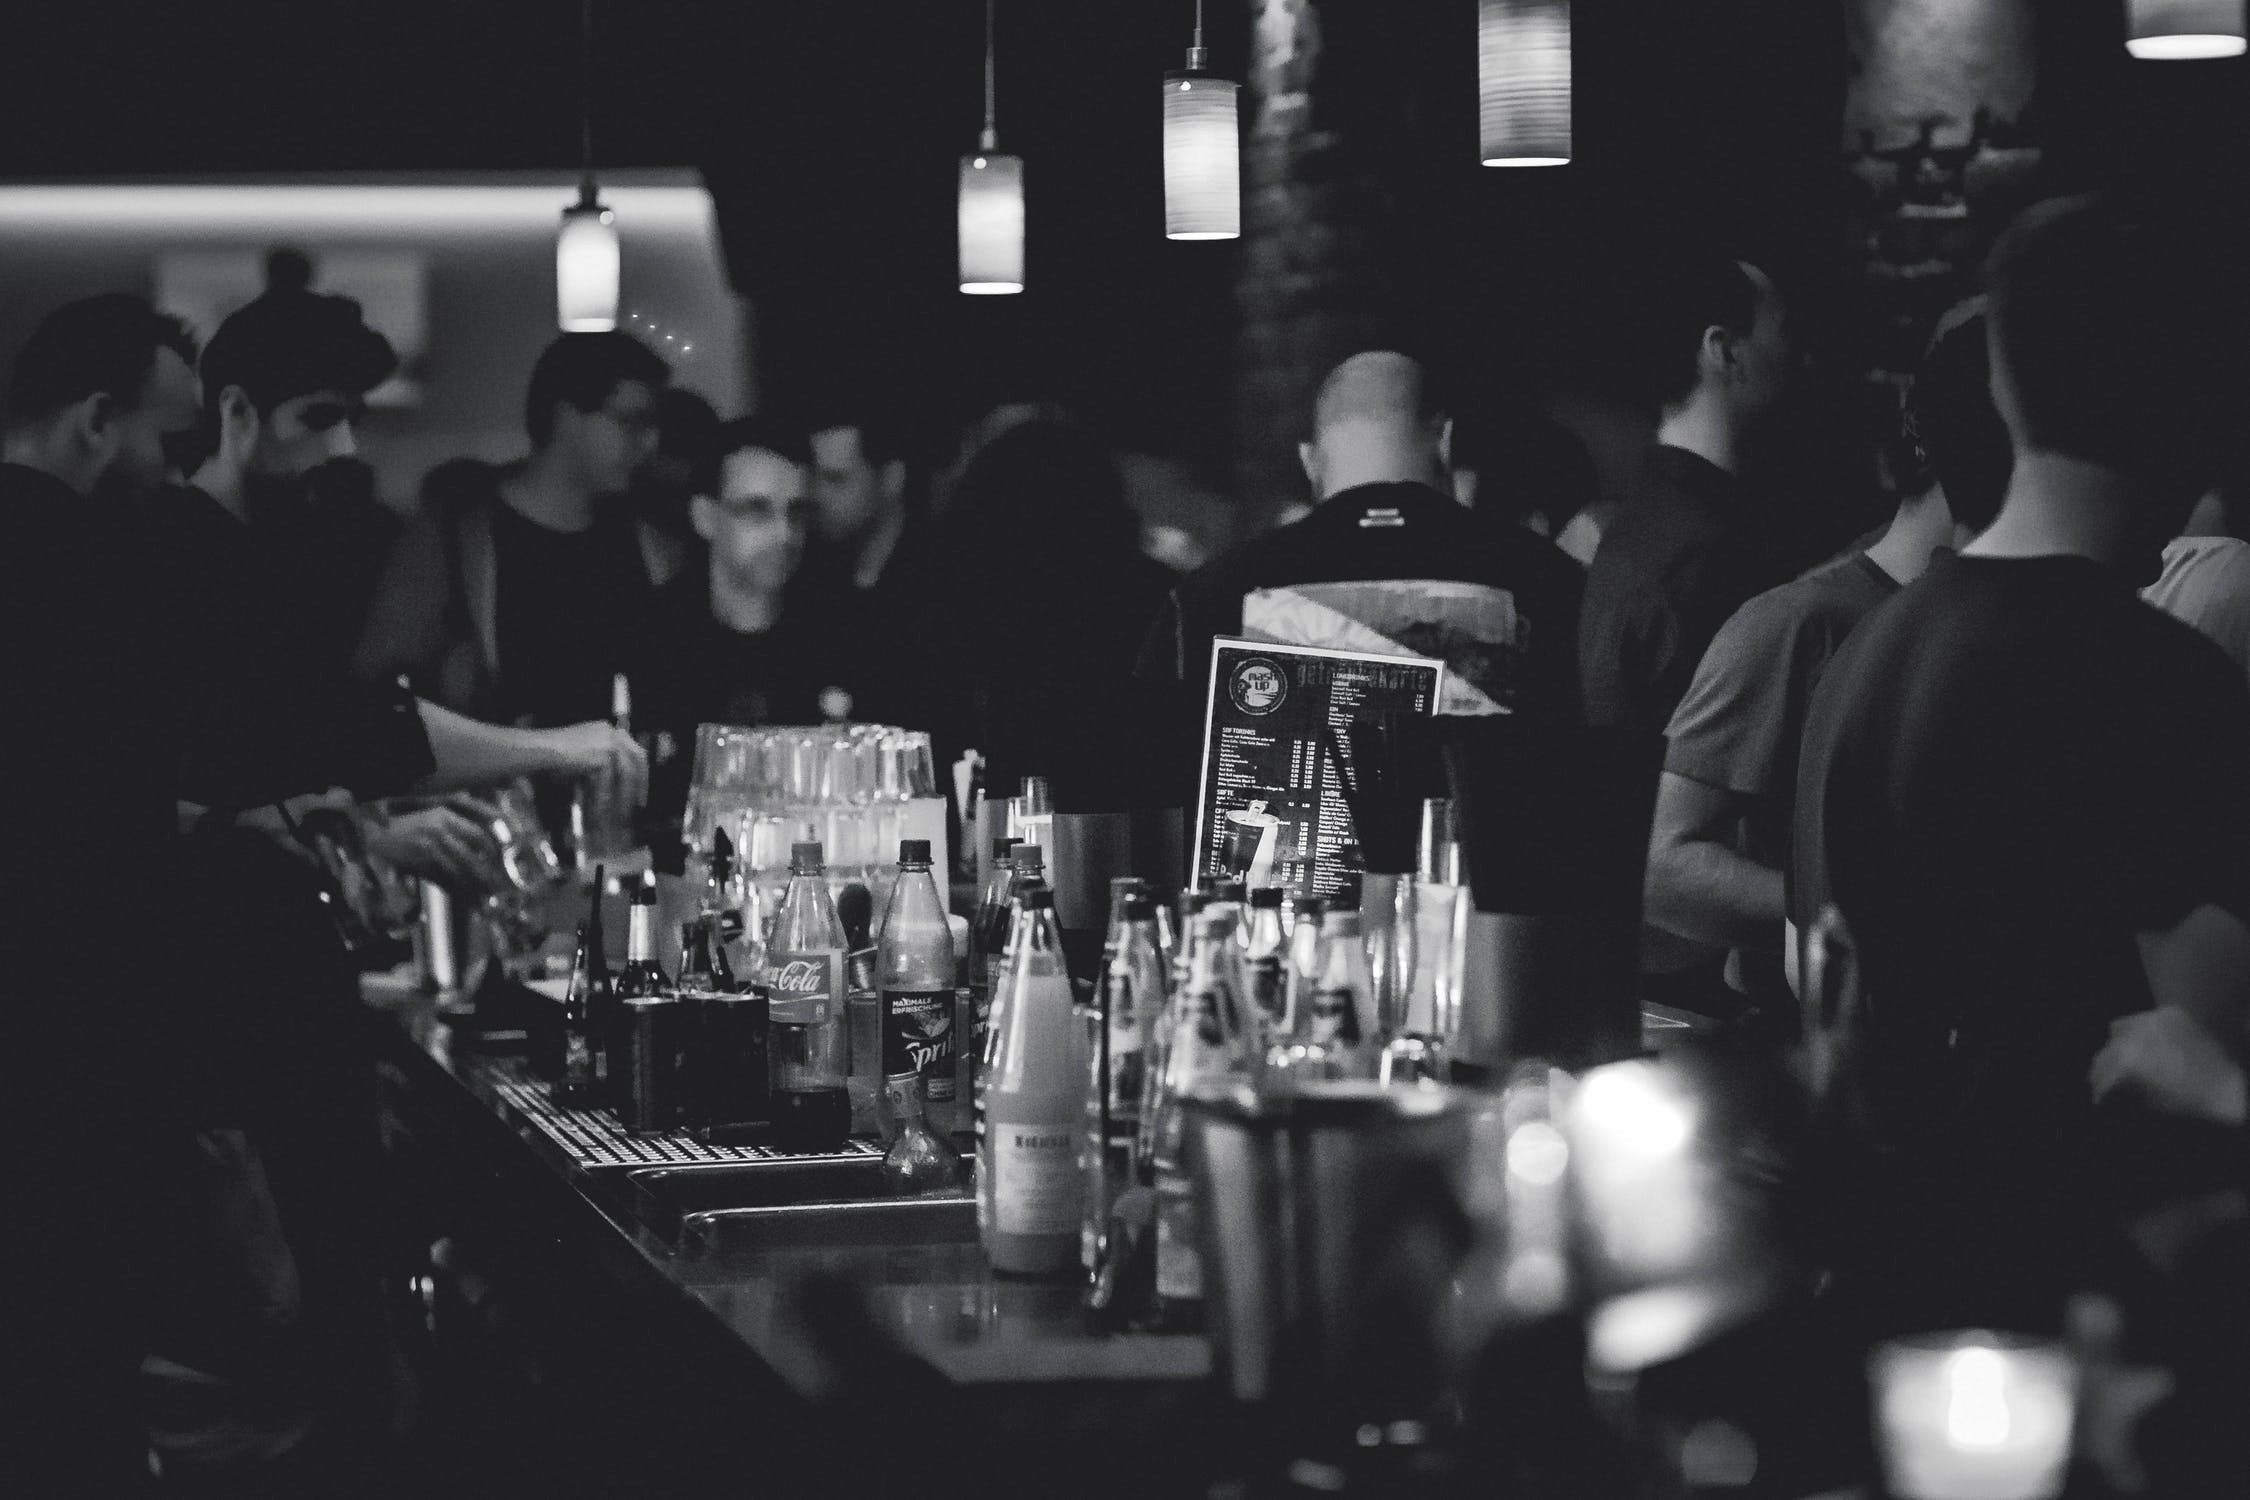 A black and white photo of a crowded bar